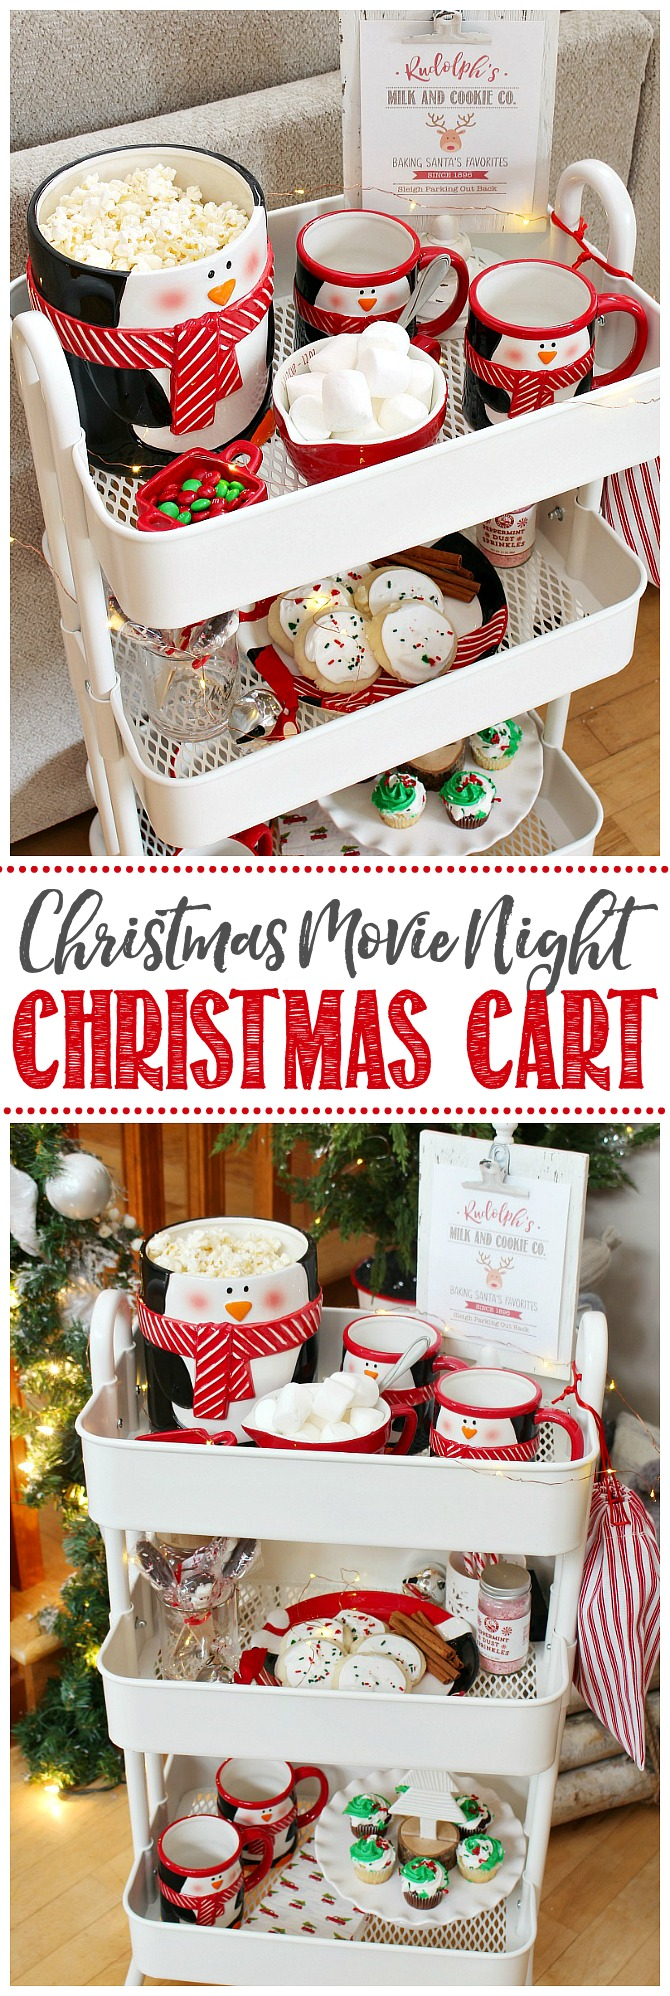 Christmas movie night rolling cart filled with Christmas goodies.